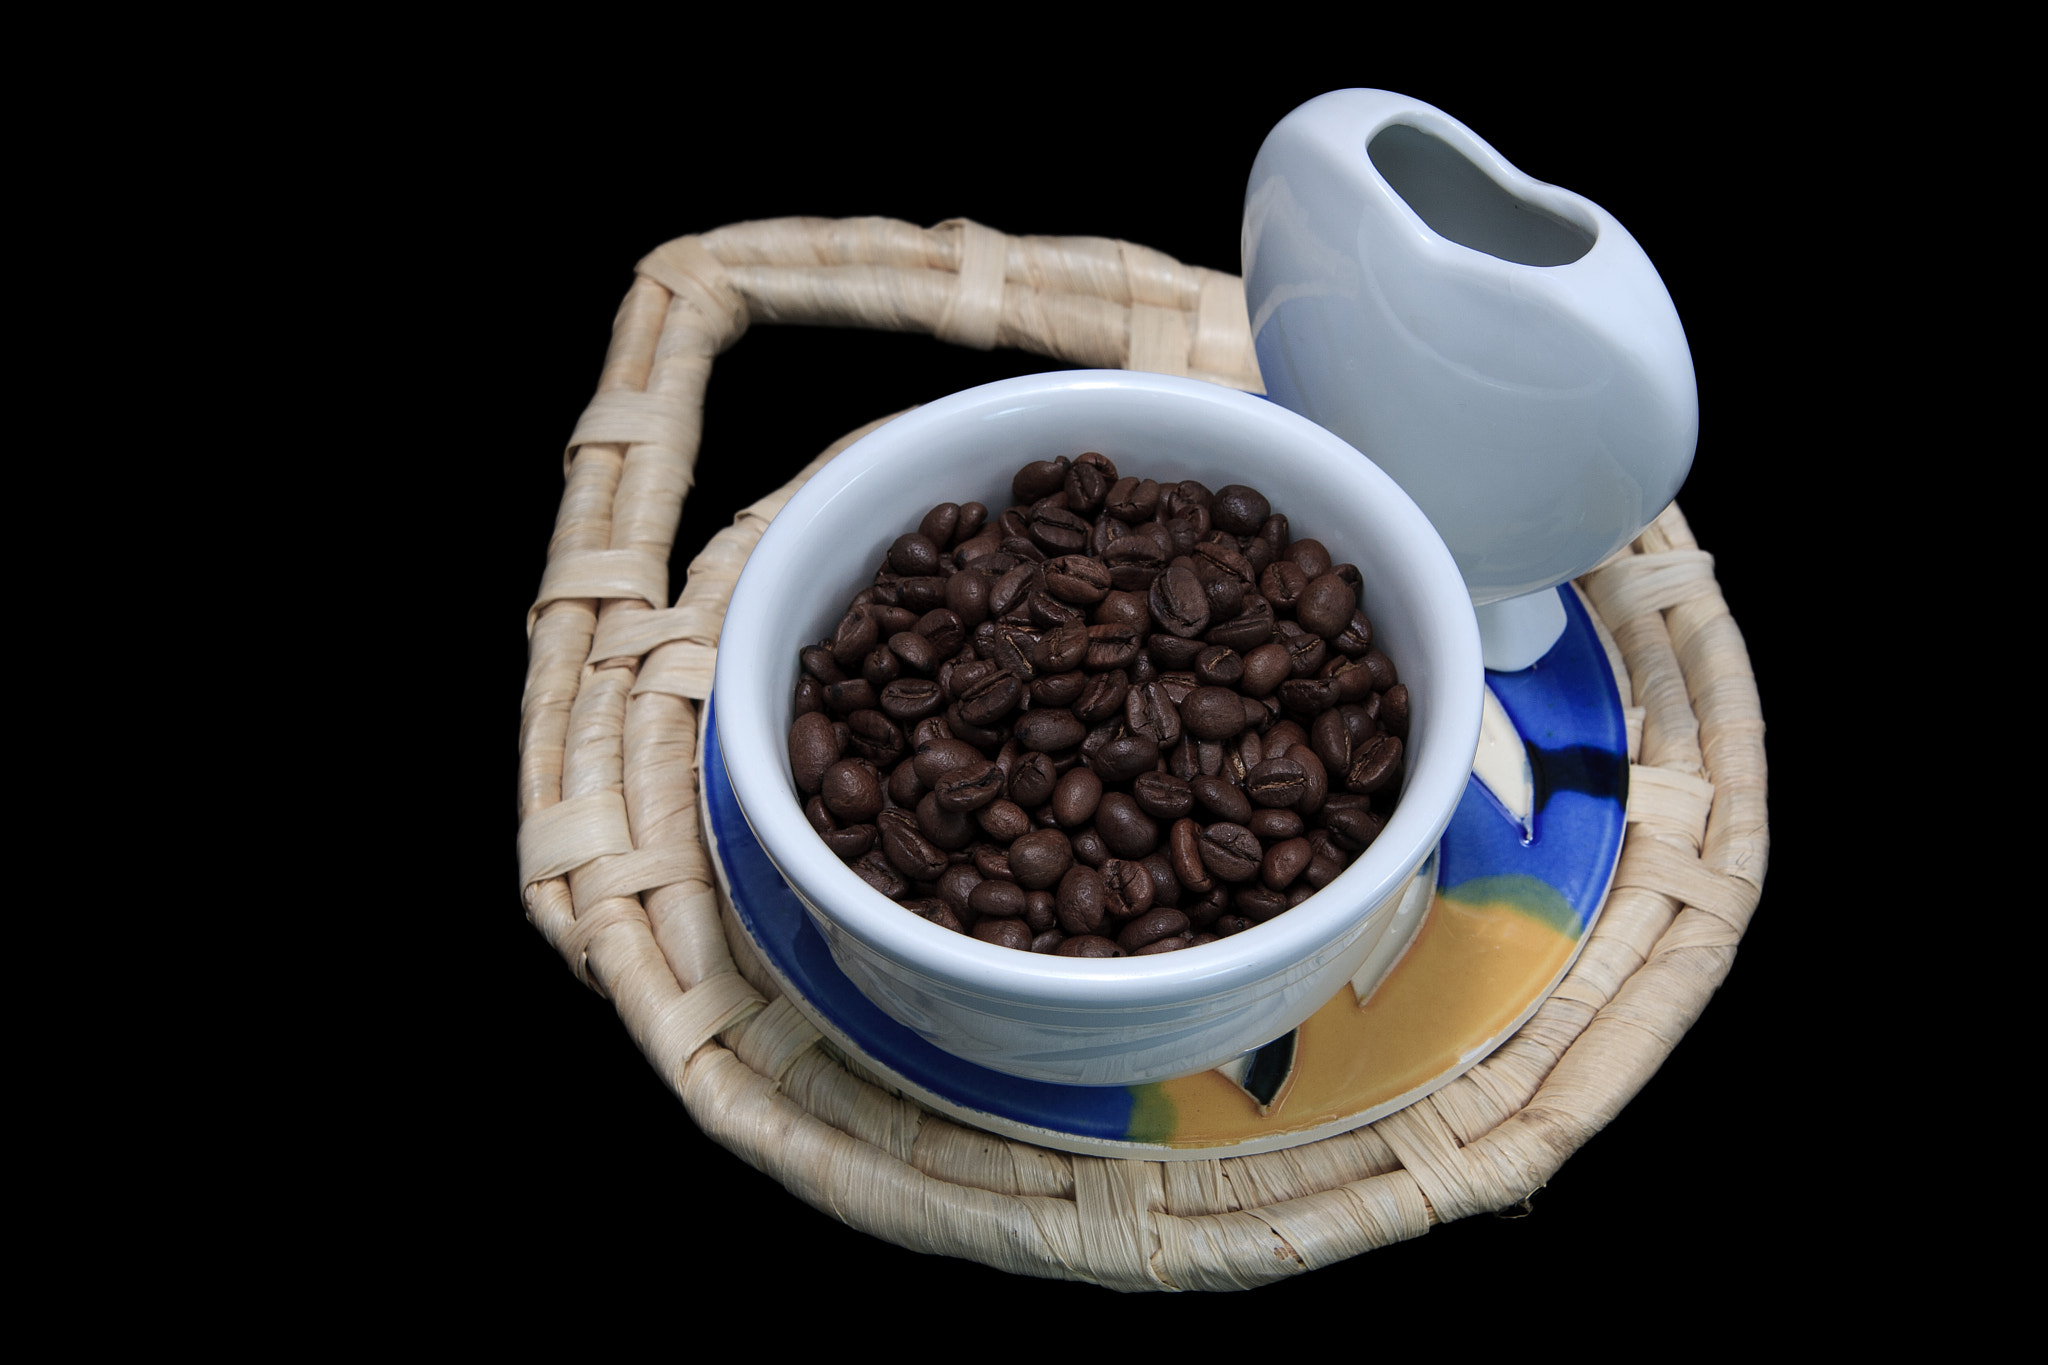 Photograph coffee grains by Luca Pardo on 500px